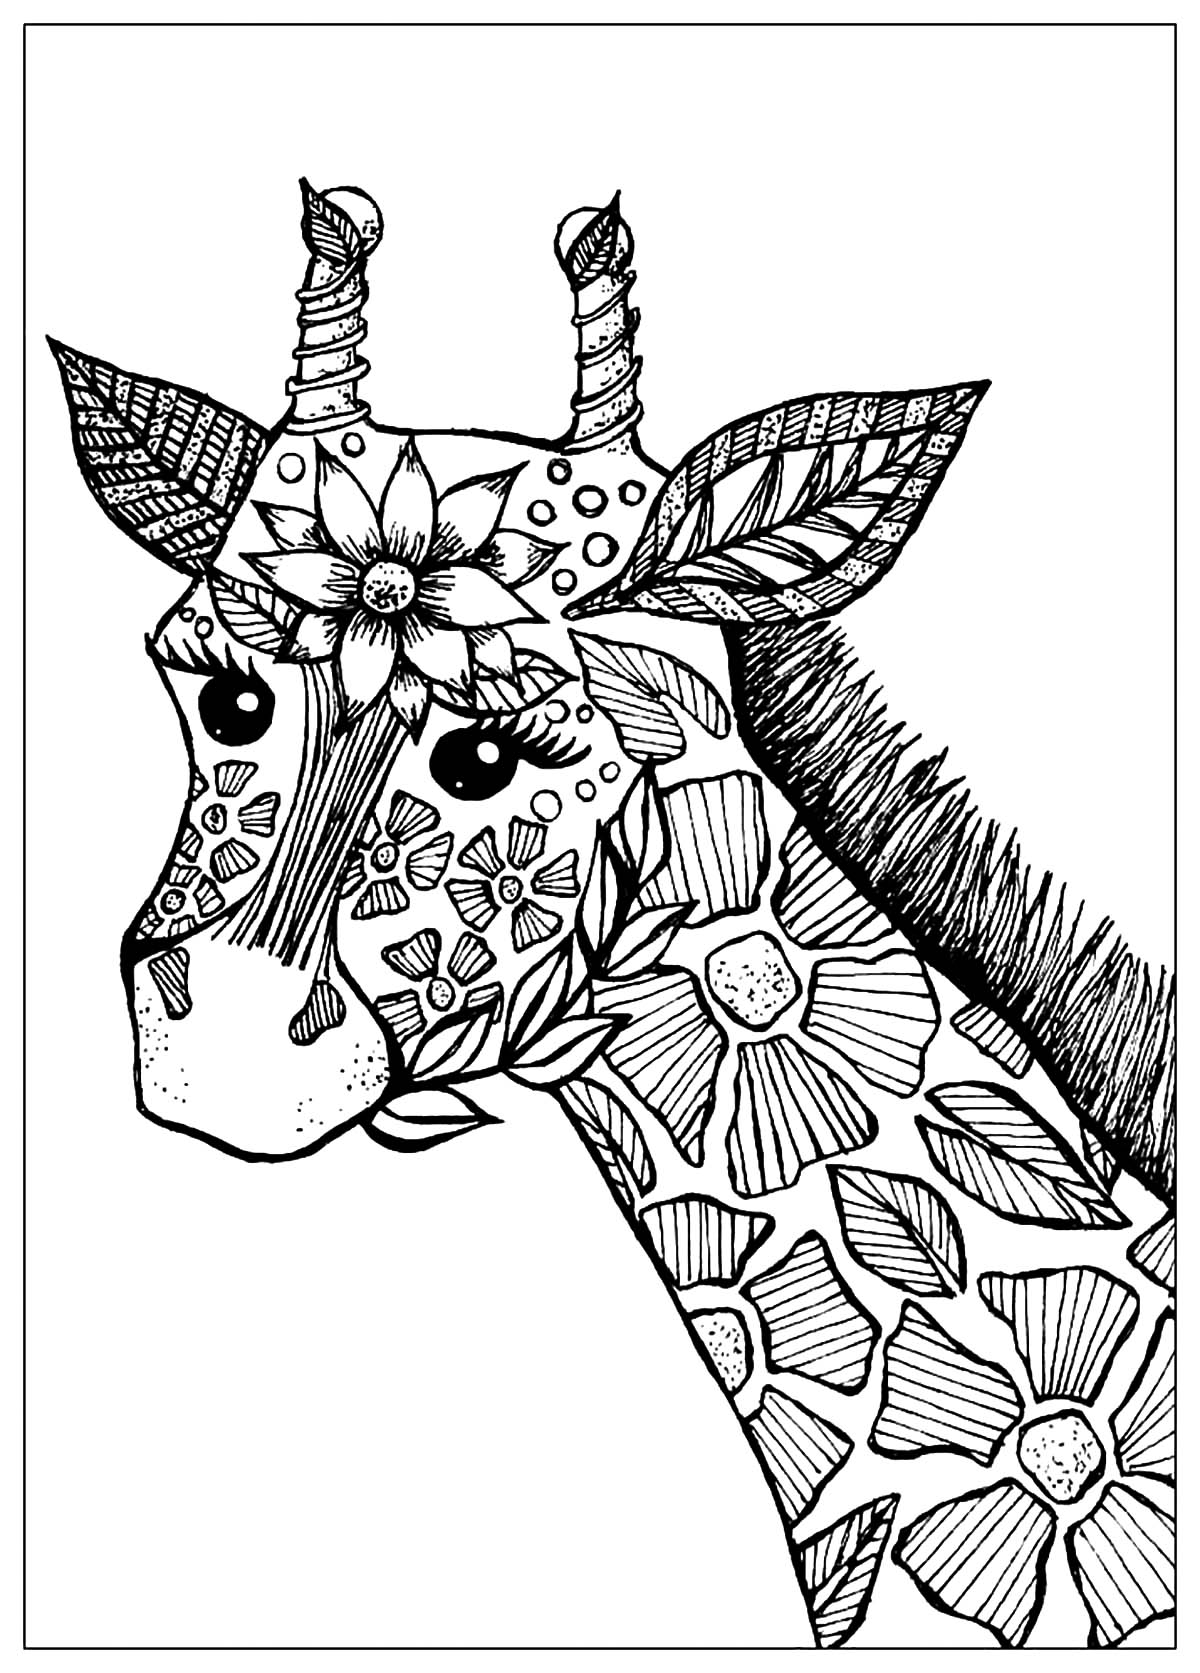 - Giraffe Head With Flowers - Giraffes Adult Coloring Pages